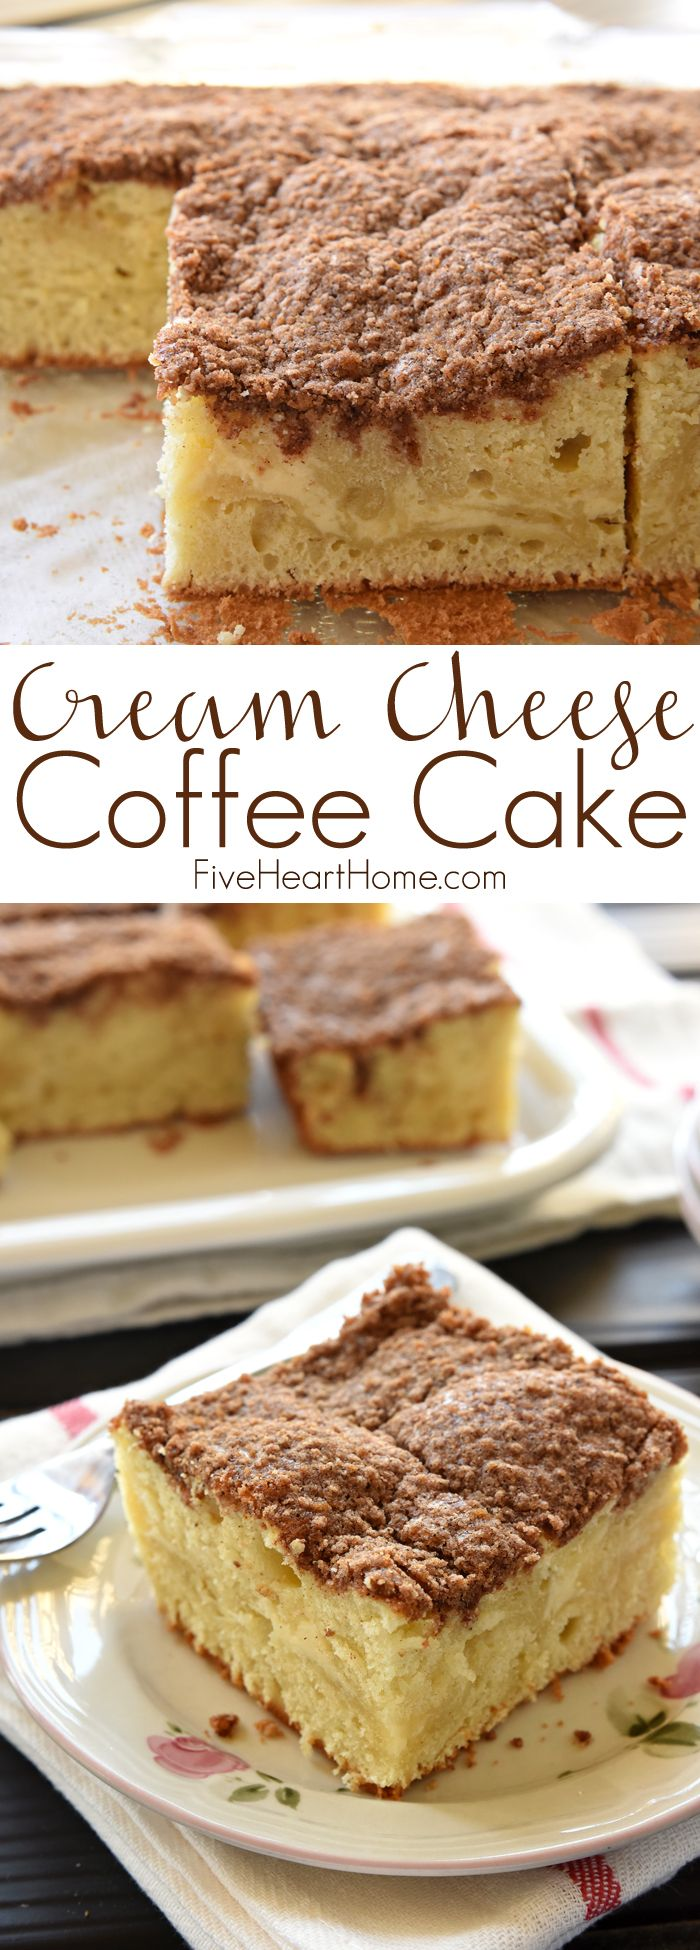 Sour cream coffee cake the frugal chef - Cream Cheese Coffee Cake With Cinnamon Streusel Topping